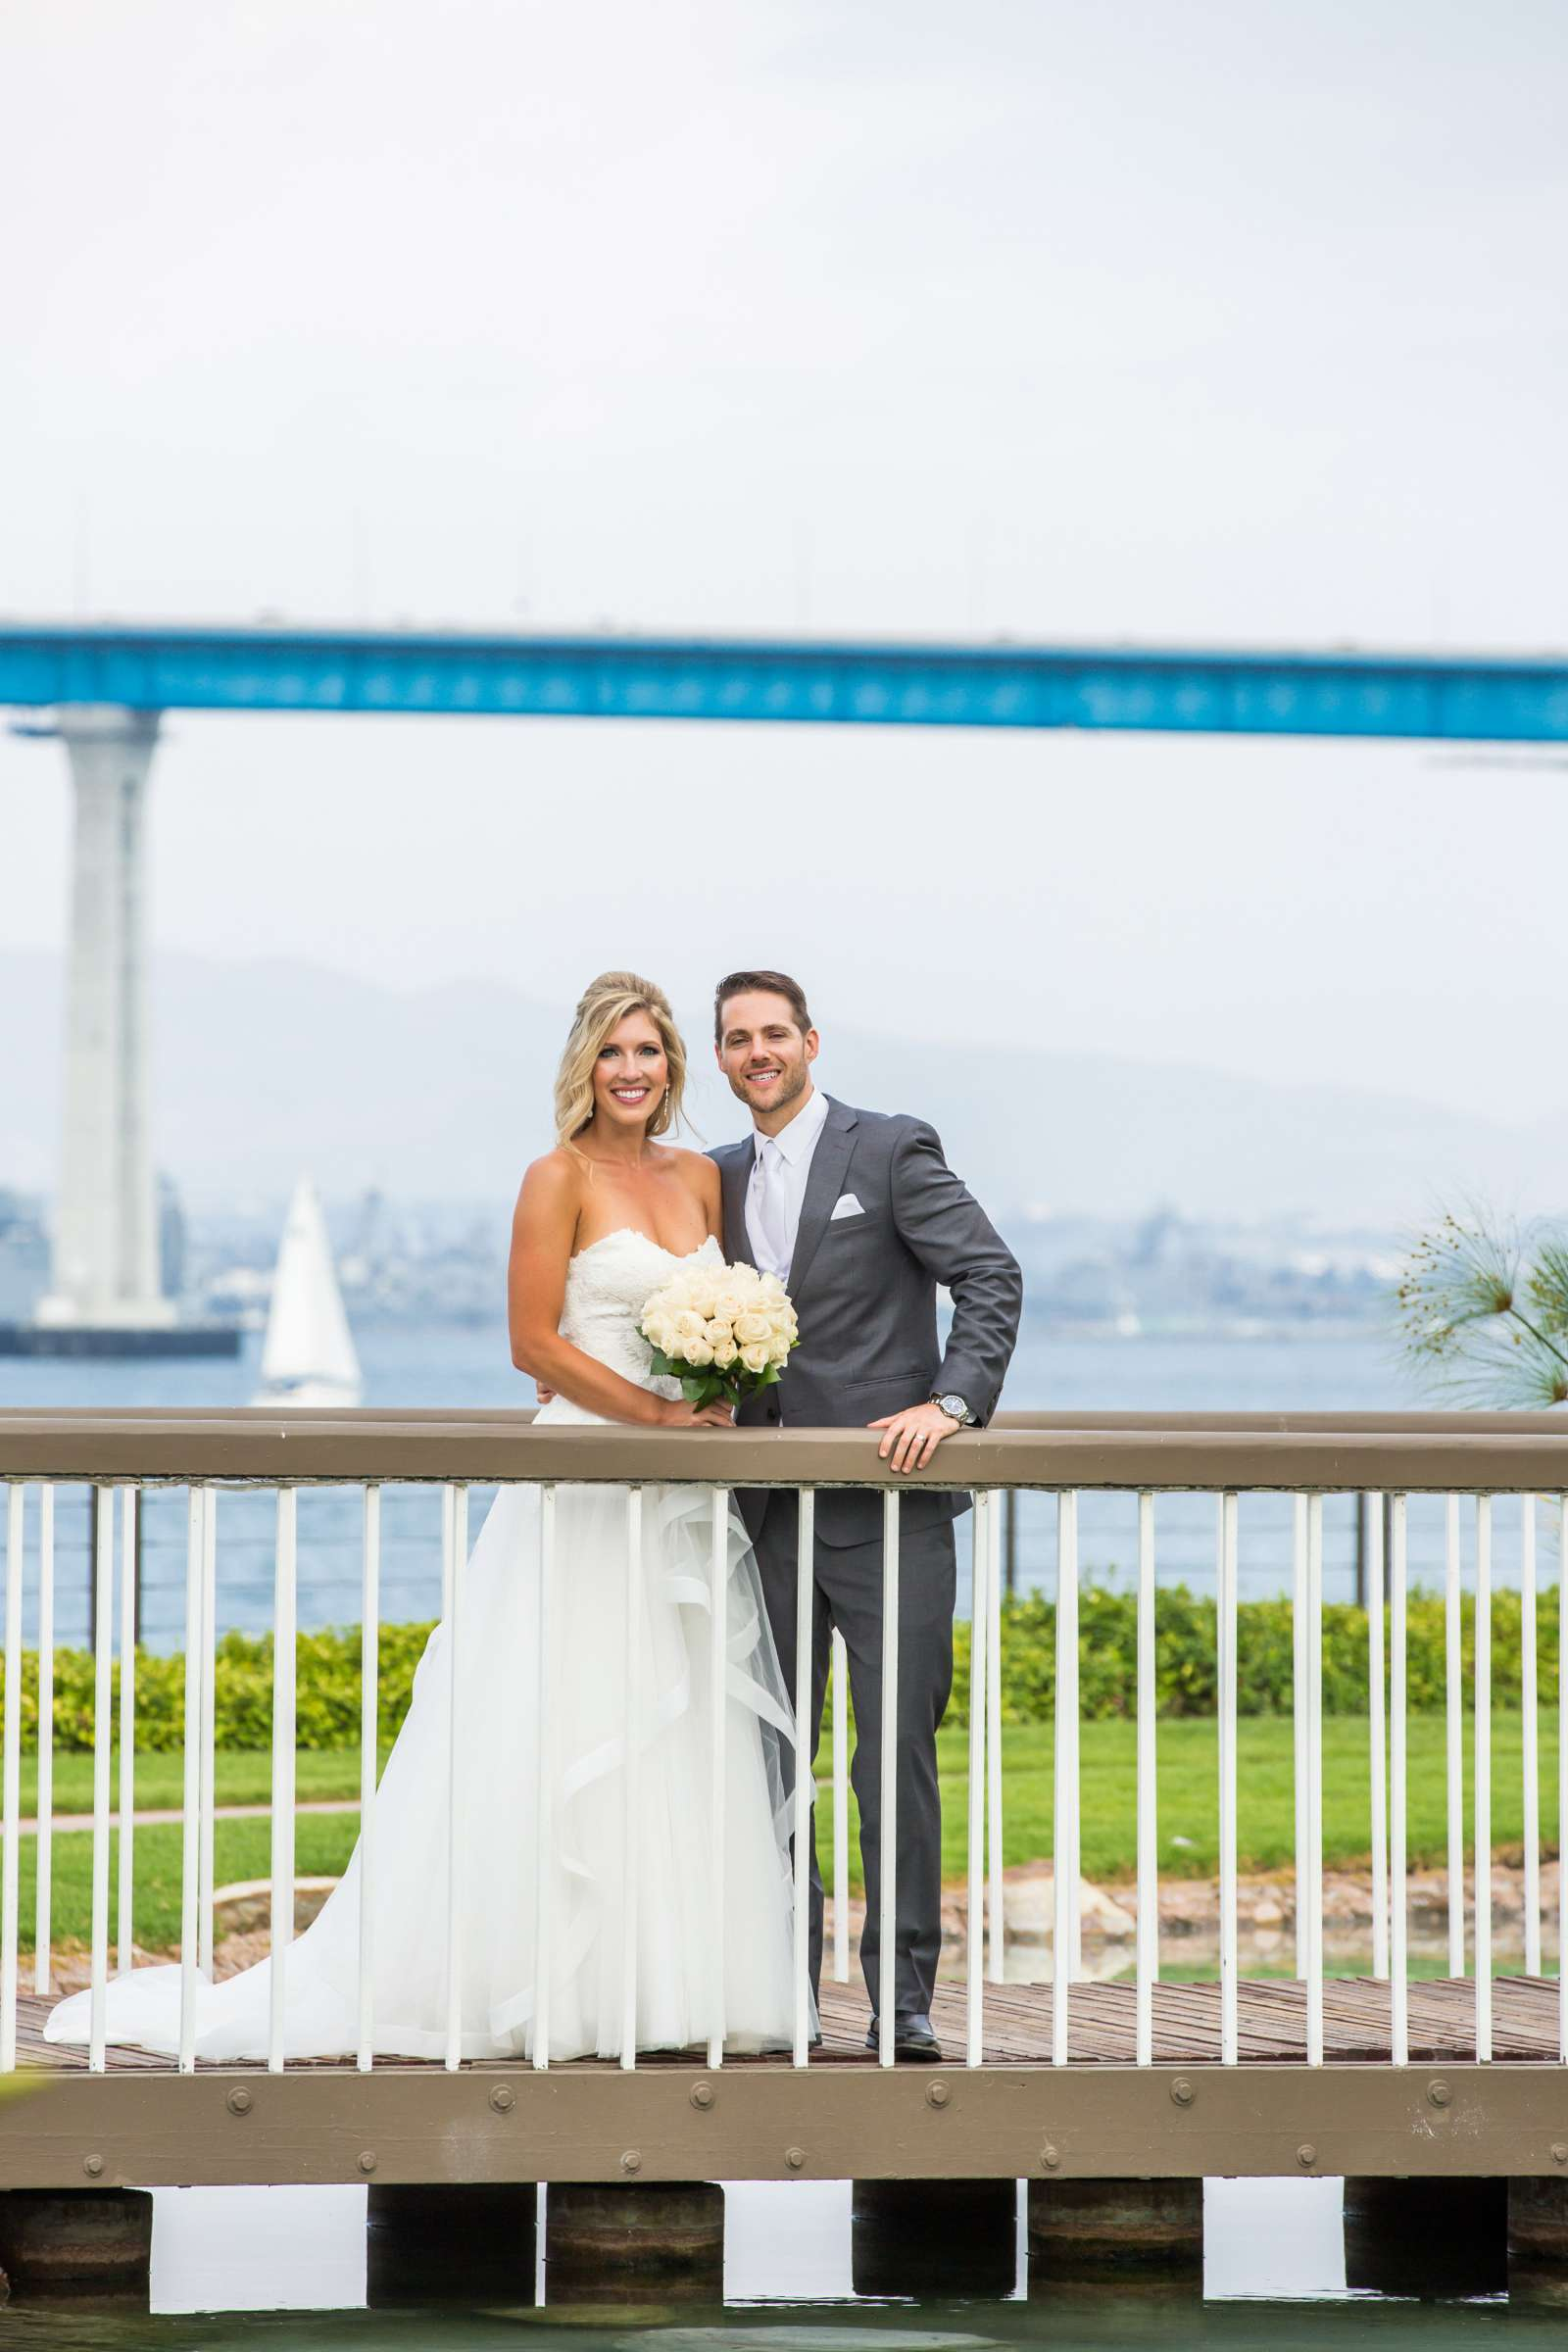 Coronado Island Marriott Resort & Spa Wedding coordinated by Lindsay Nicole Weddings & Events, Christine and Preston Wedding Photo #245842 by True Photography